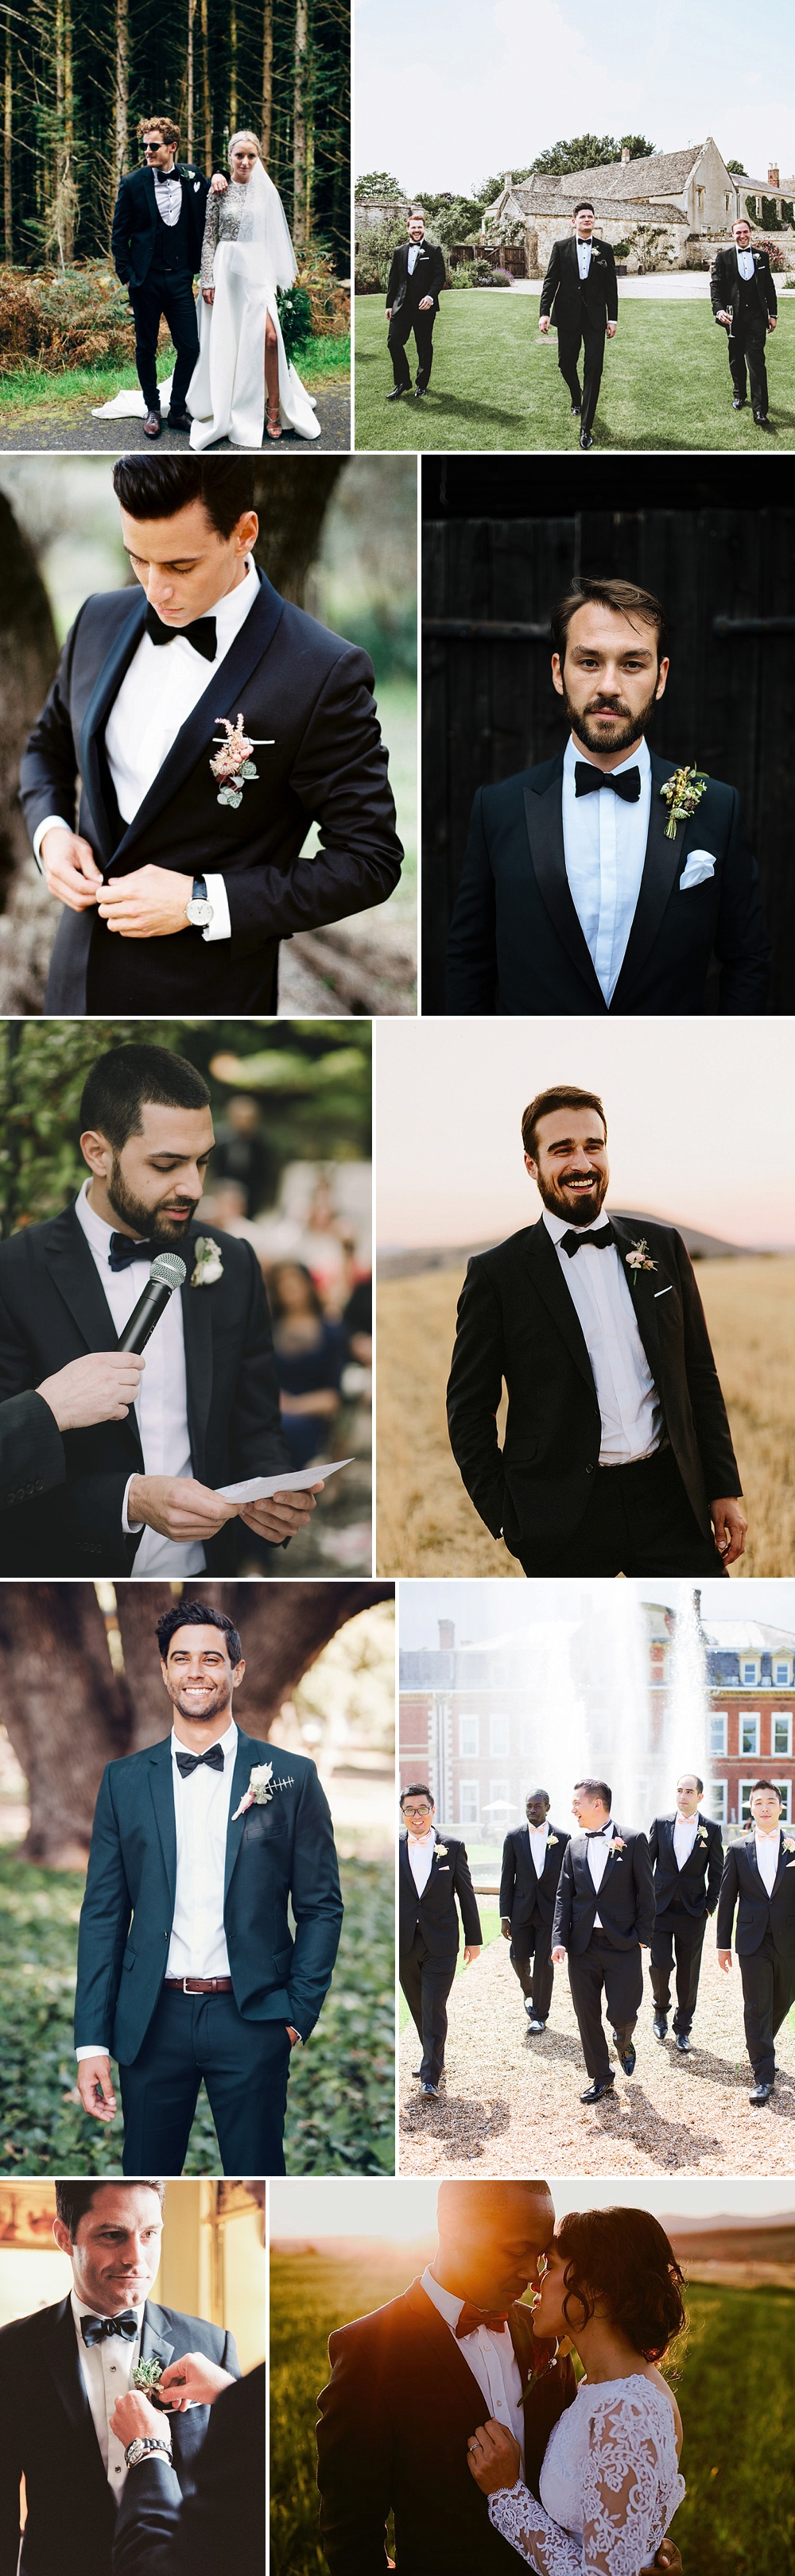 Groom Wearing Black Tie For Wedding | Groom Fashion Inspiration Black Tie